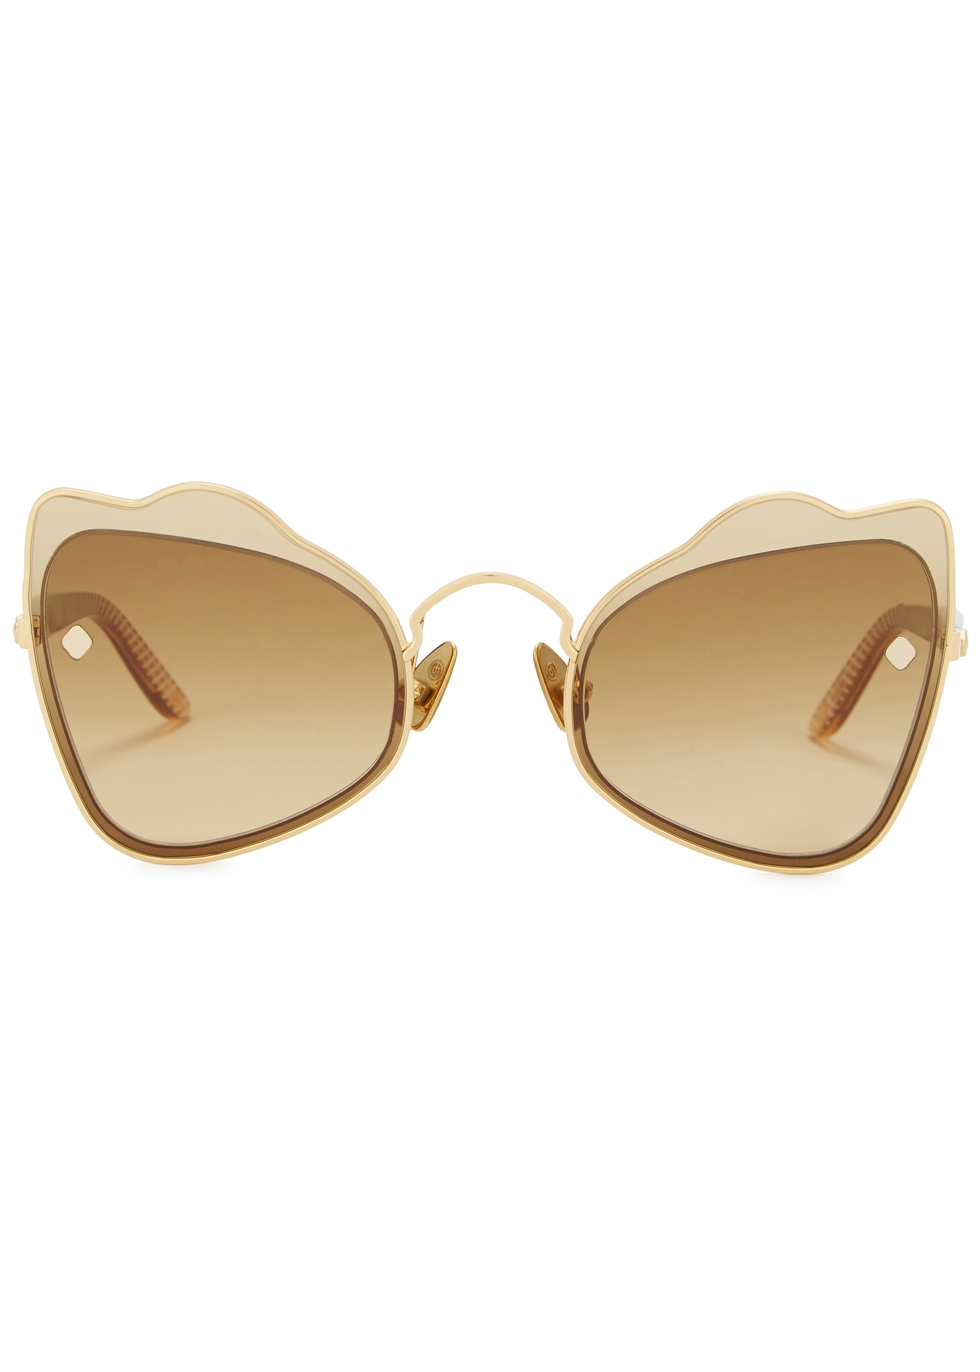 MOY ATELIER Odyssey 18Ct Gold-Plated Sunglasses in Brown